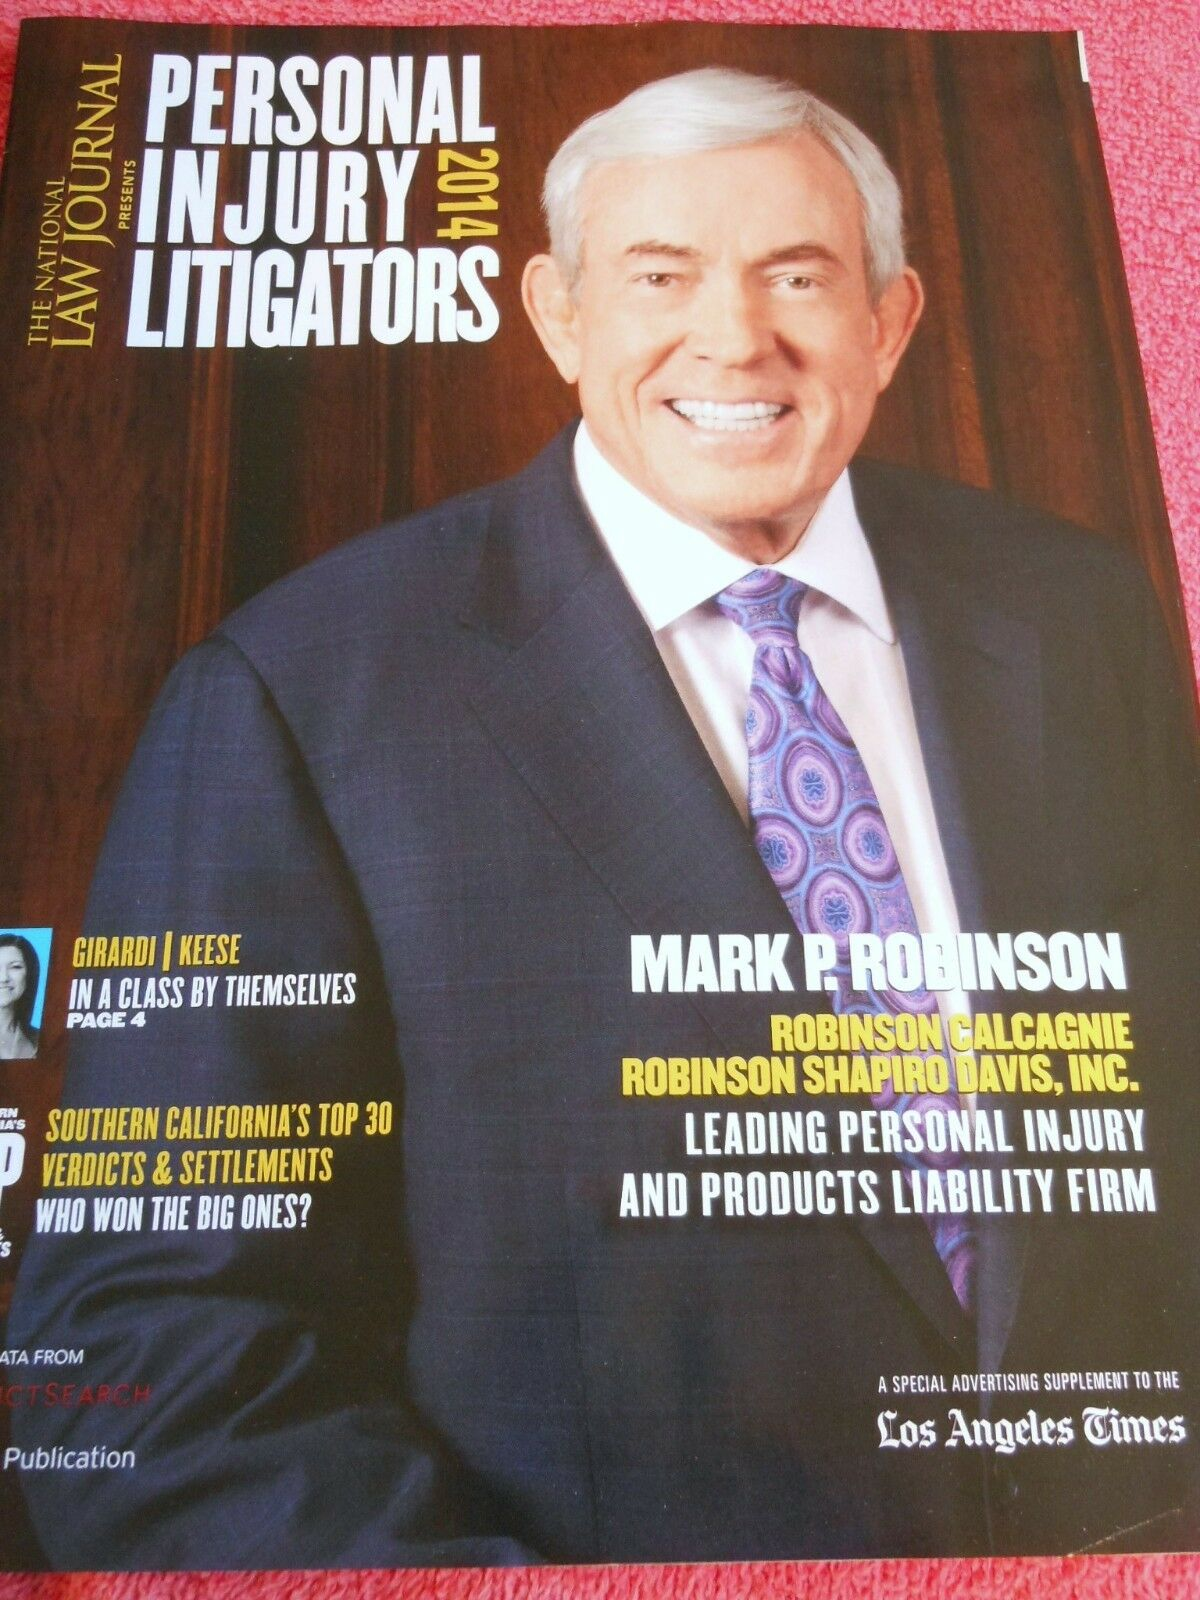 NATIONAL LAW JOURNAL PERSONAL INJURY LITIGATORS 2014 MARK ROBINSON GIGARDI KEESE 1